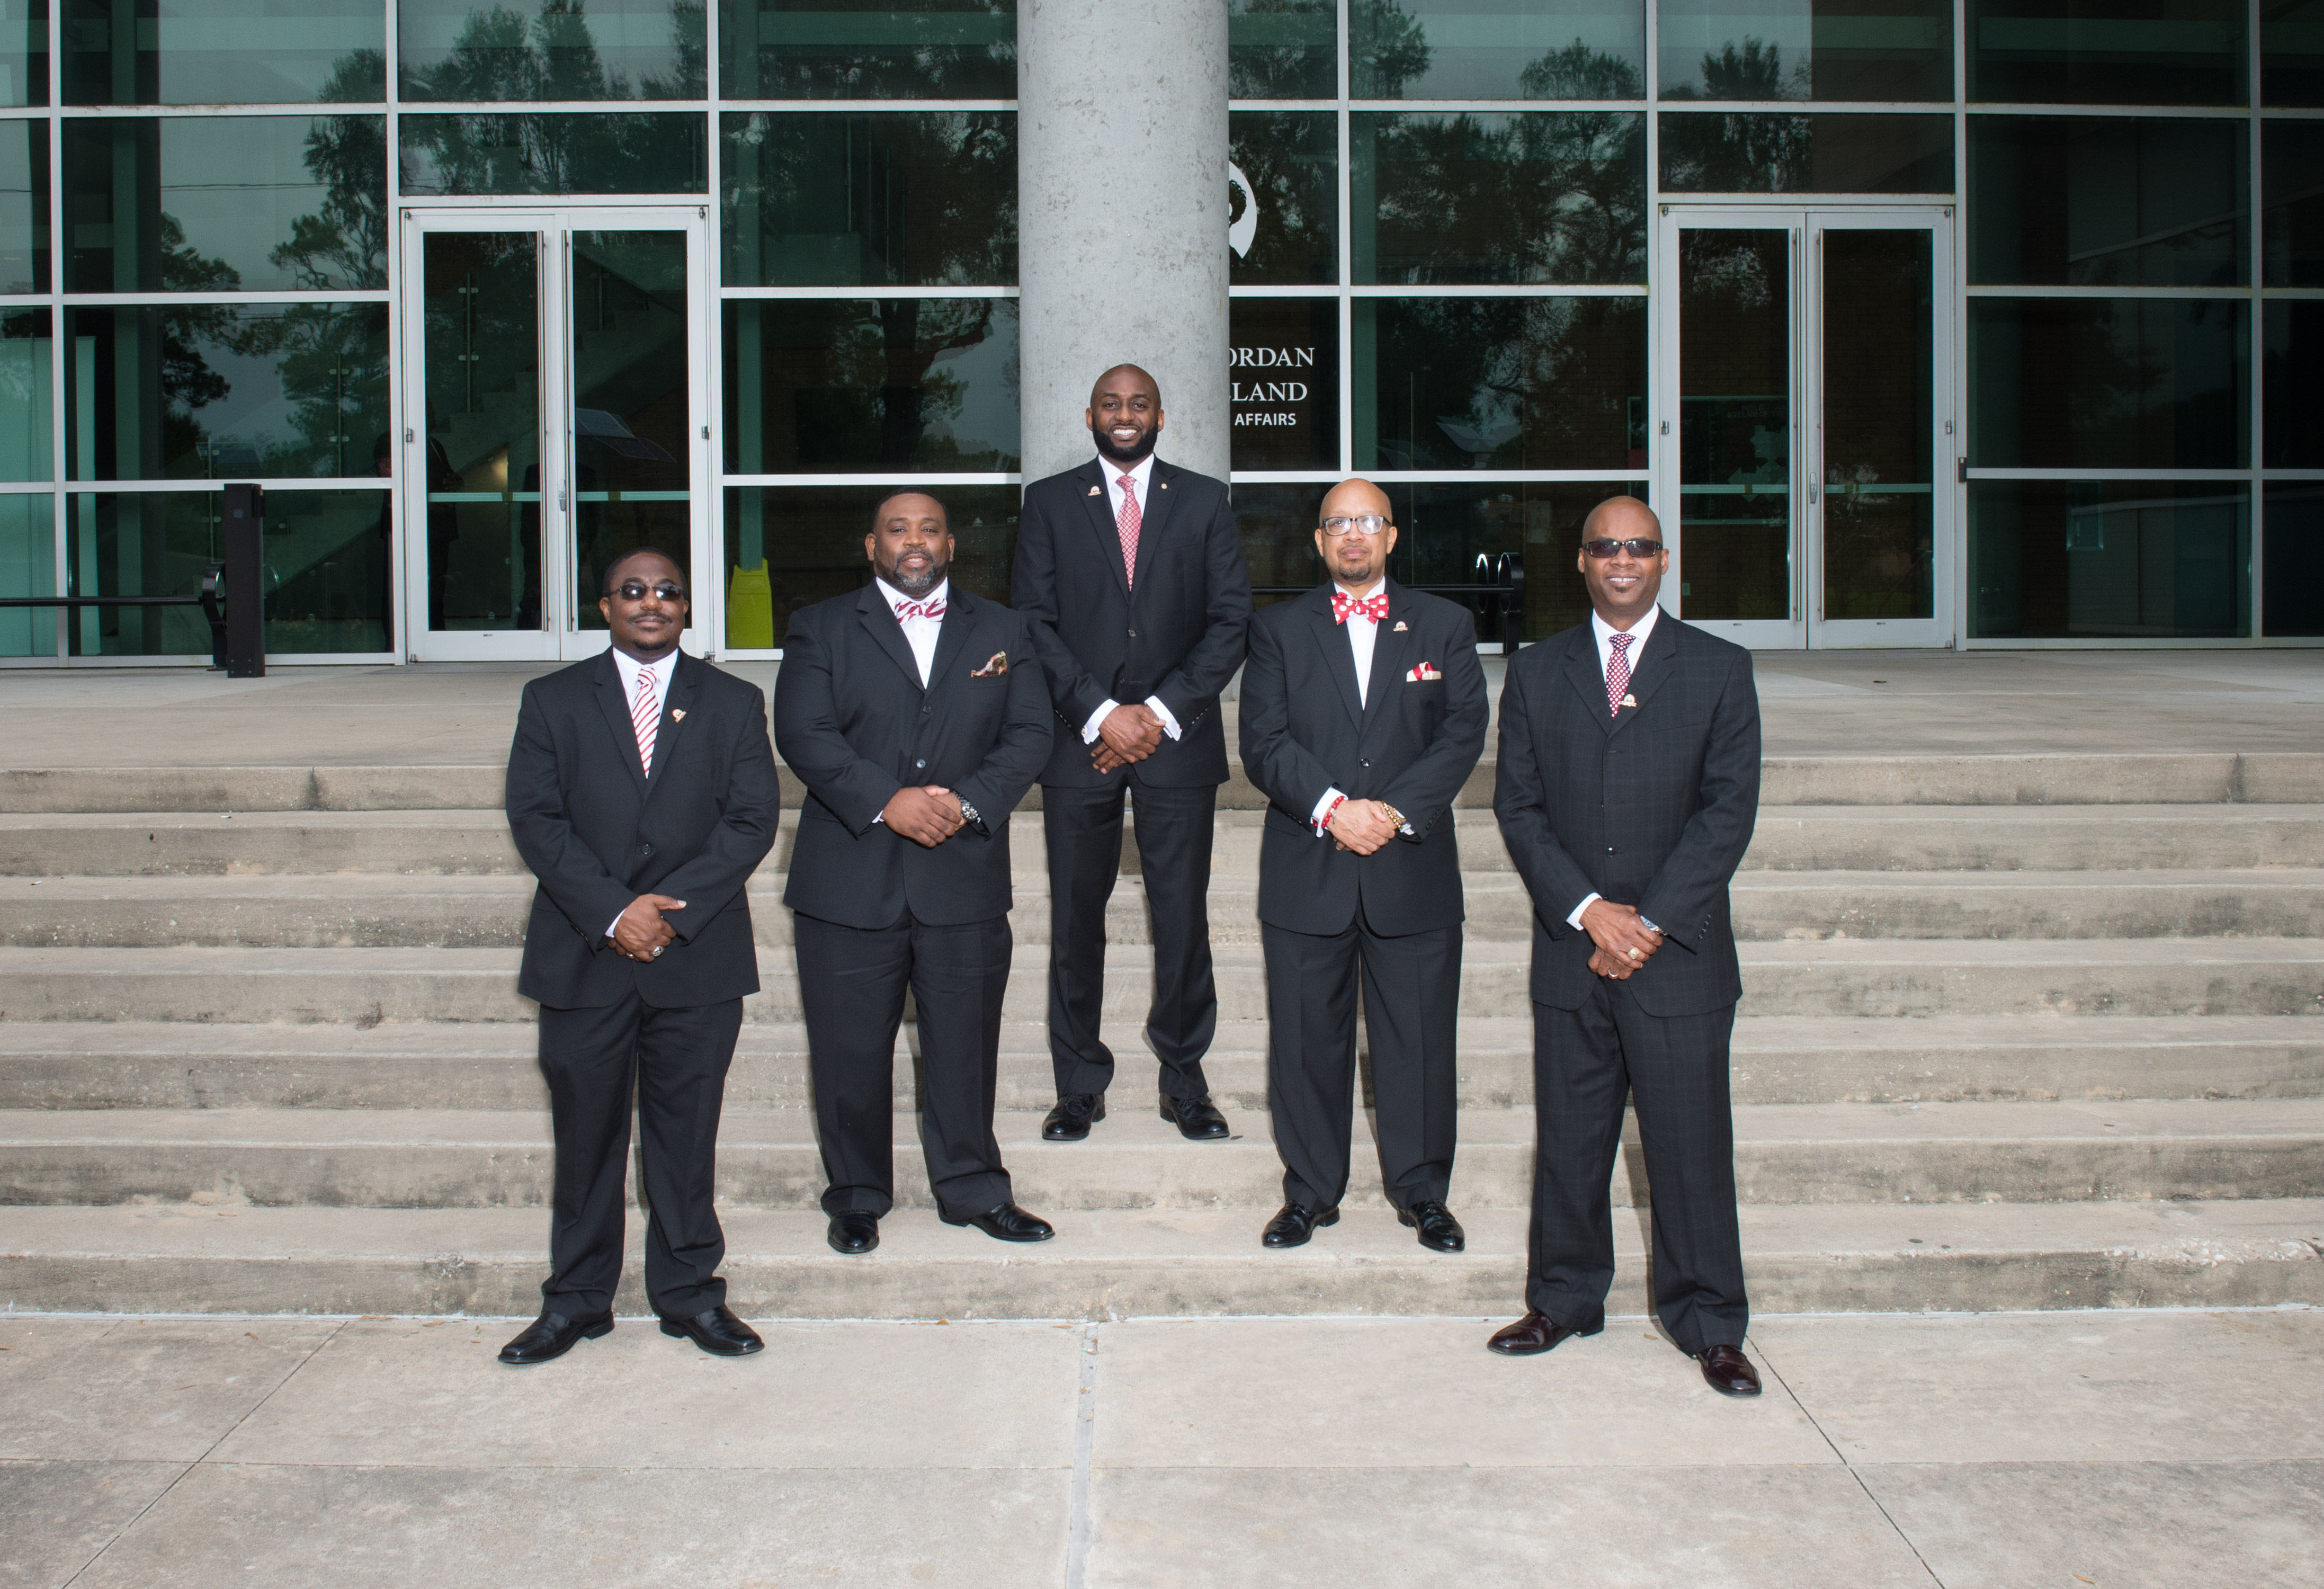 Houston (TX) Alumni Chapter Officers 2017-2018